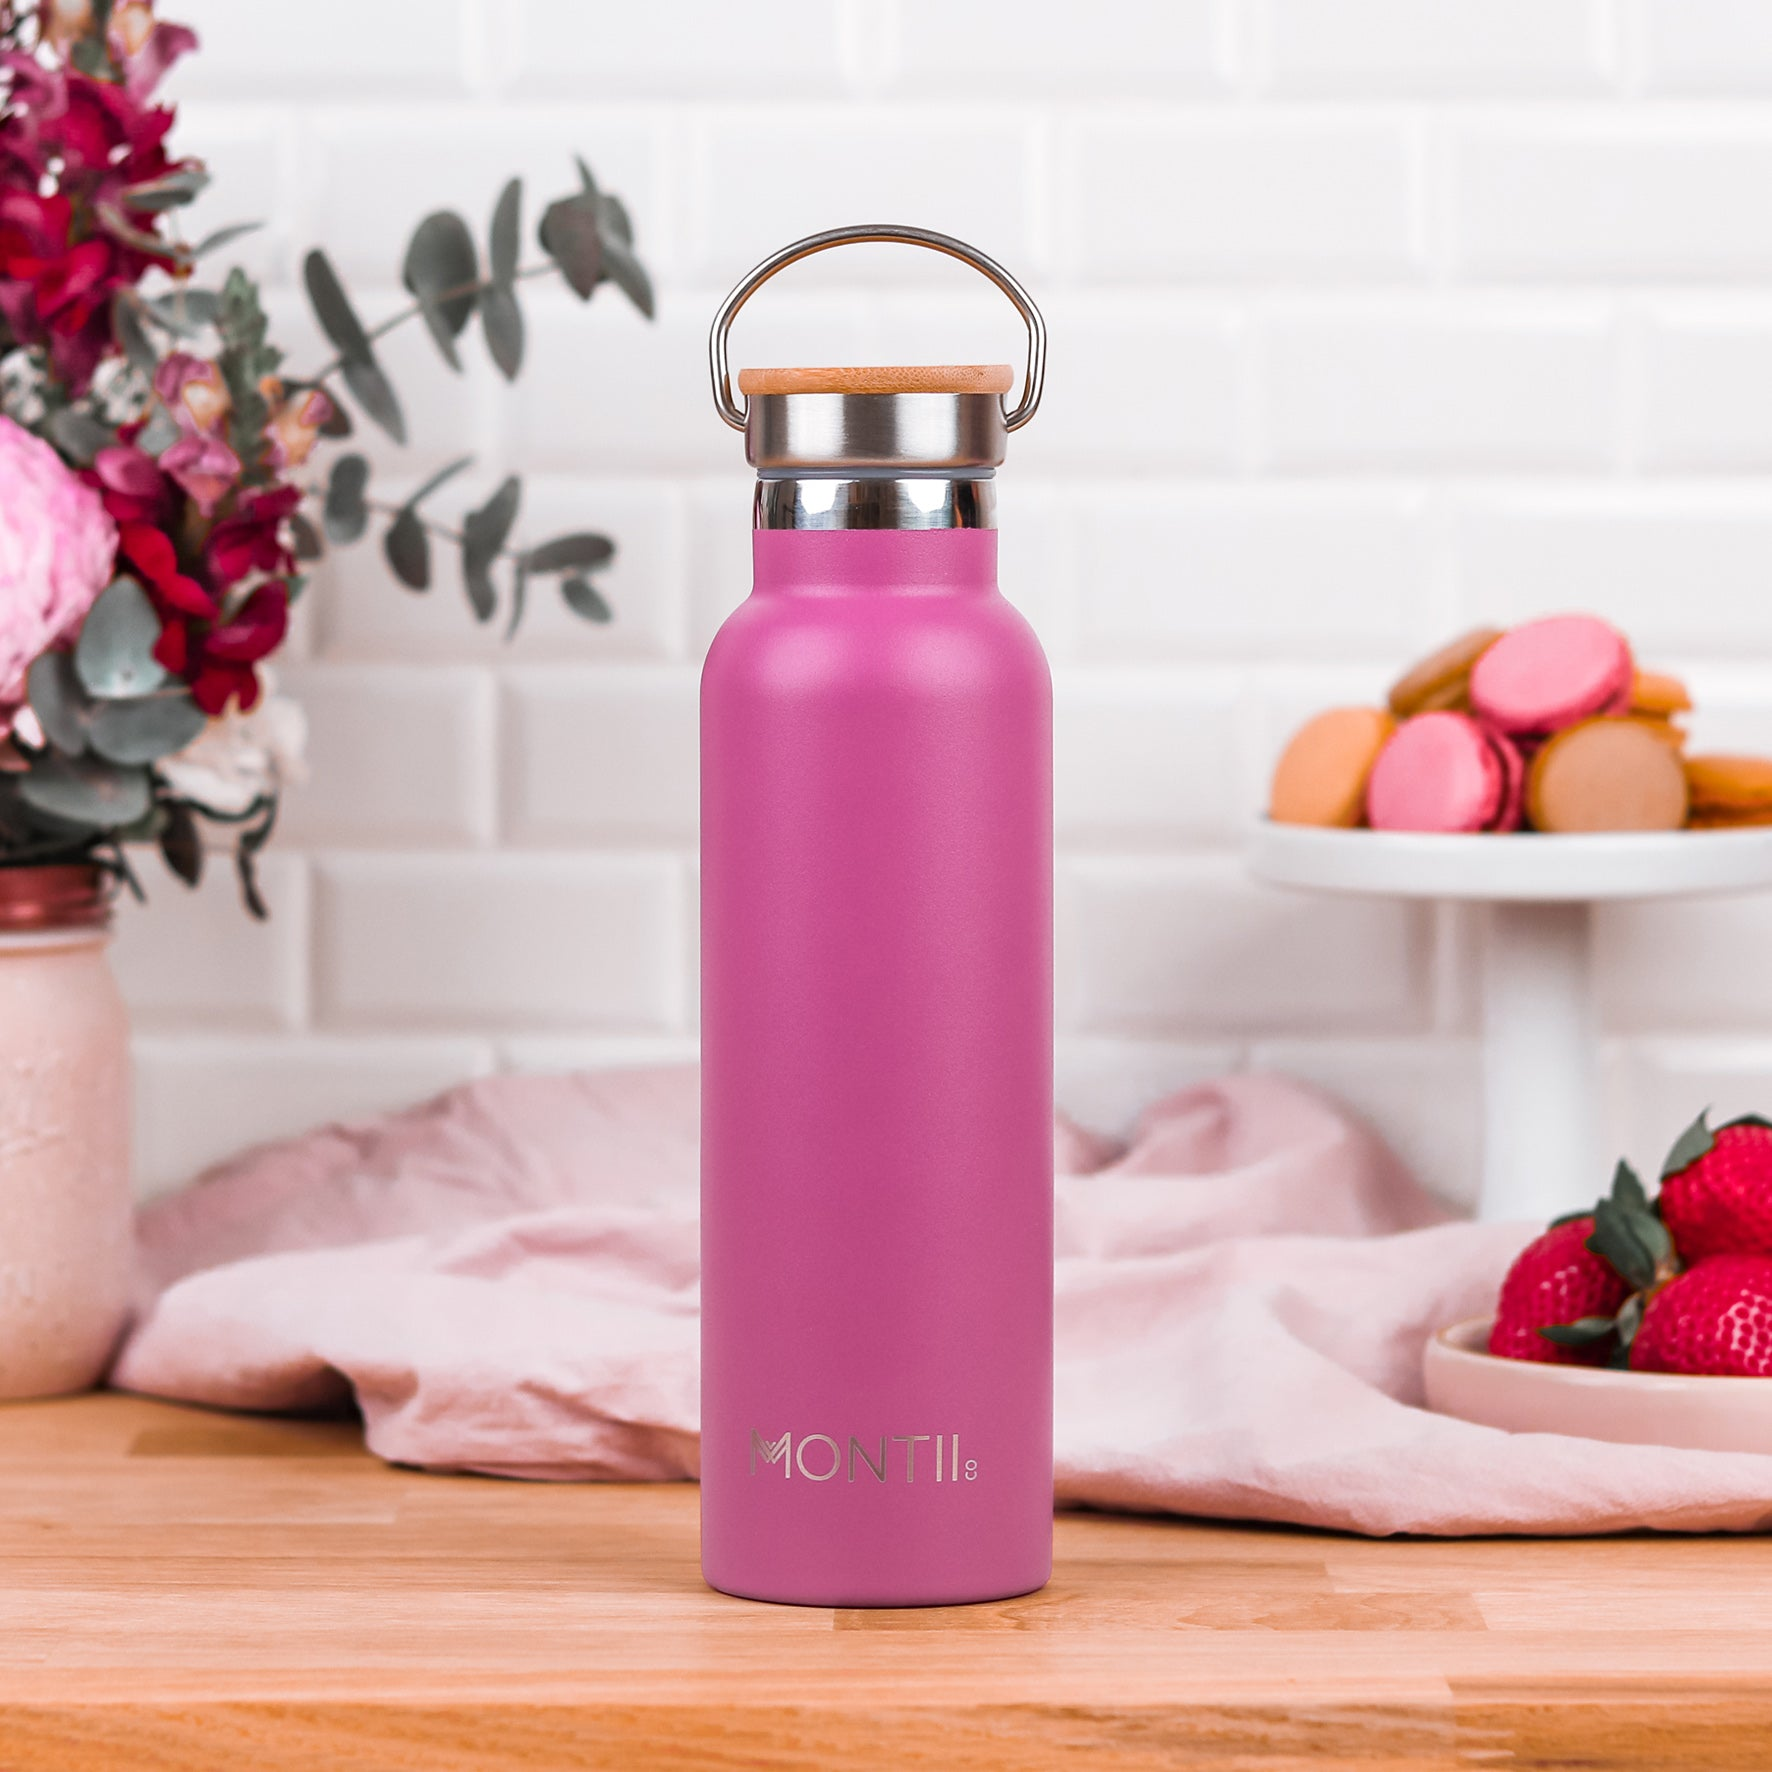 Montii Co Original Drink Bottle - Rose